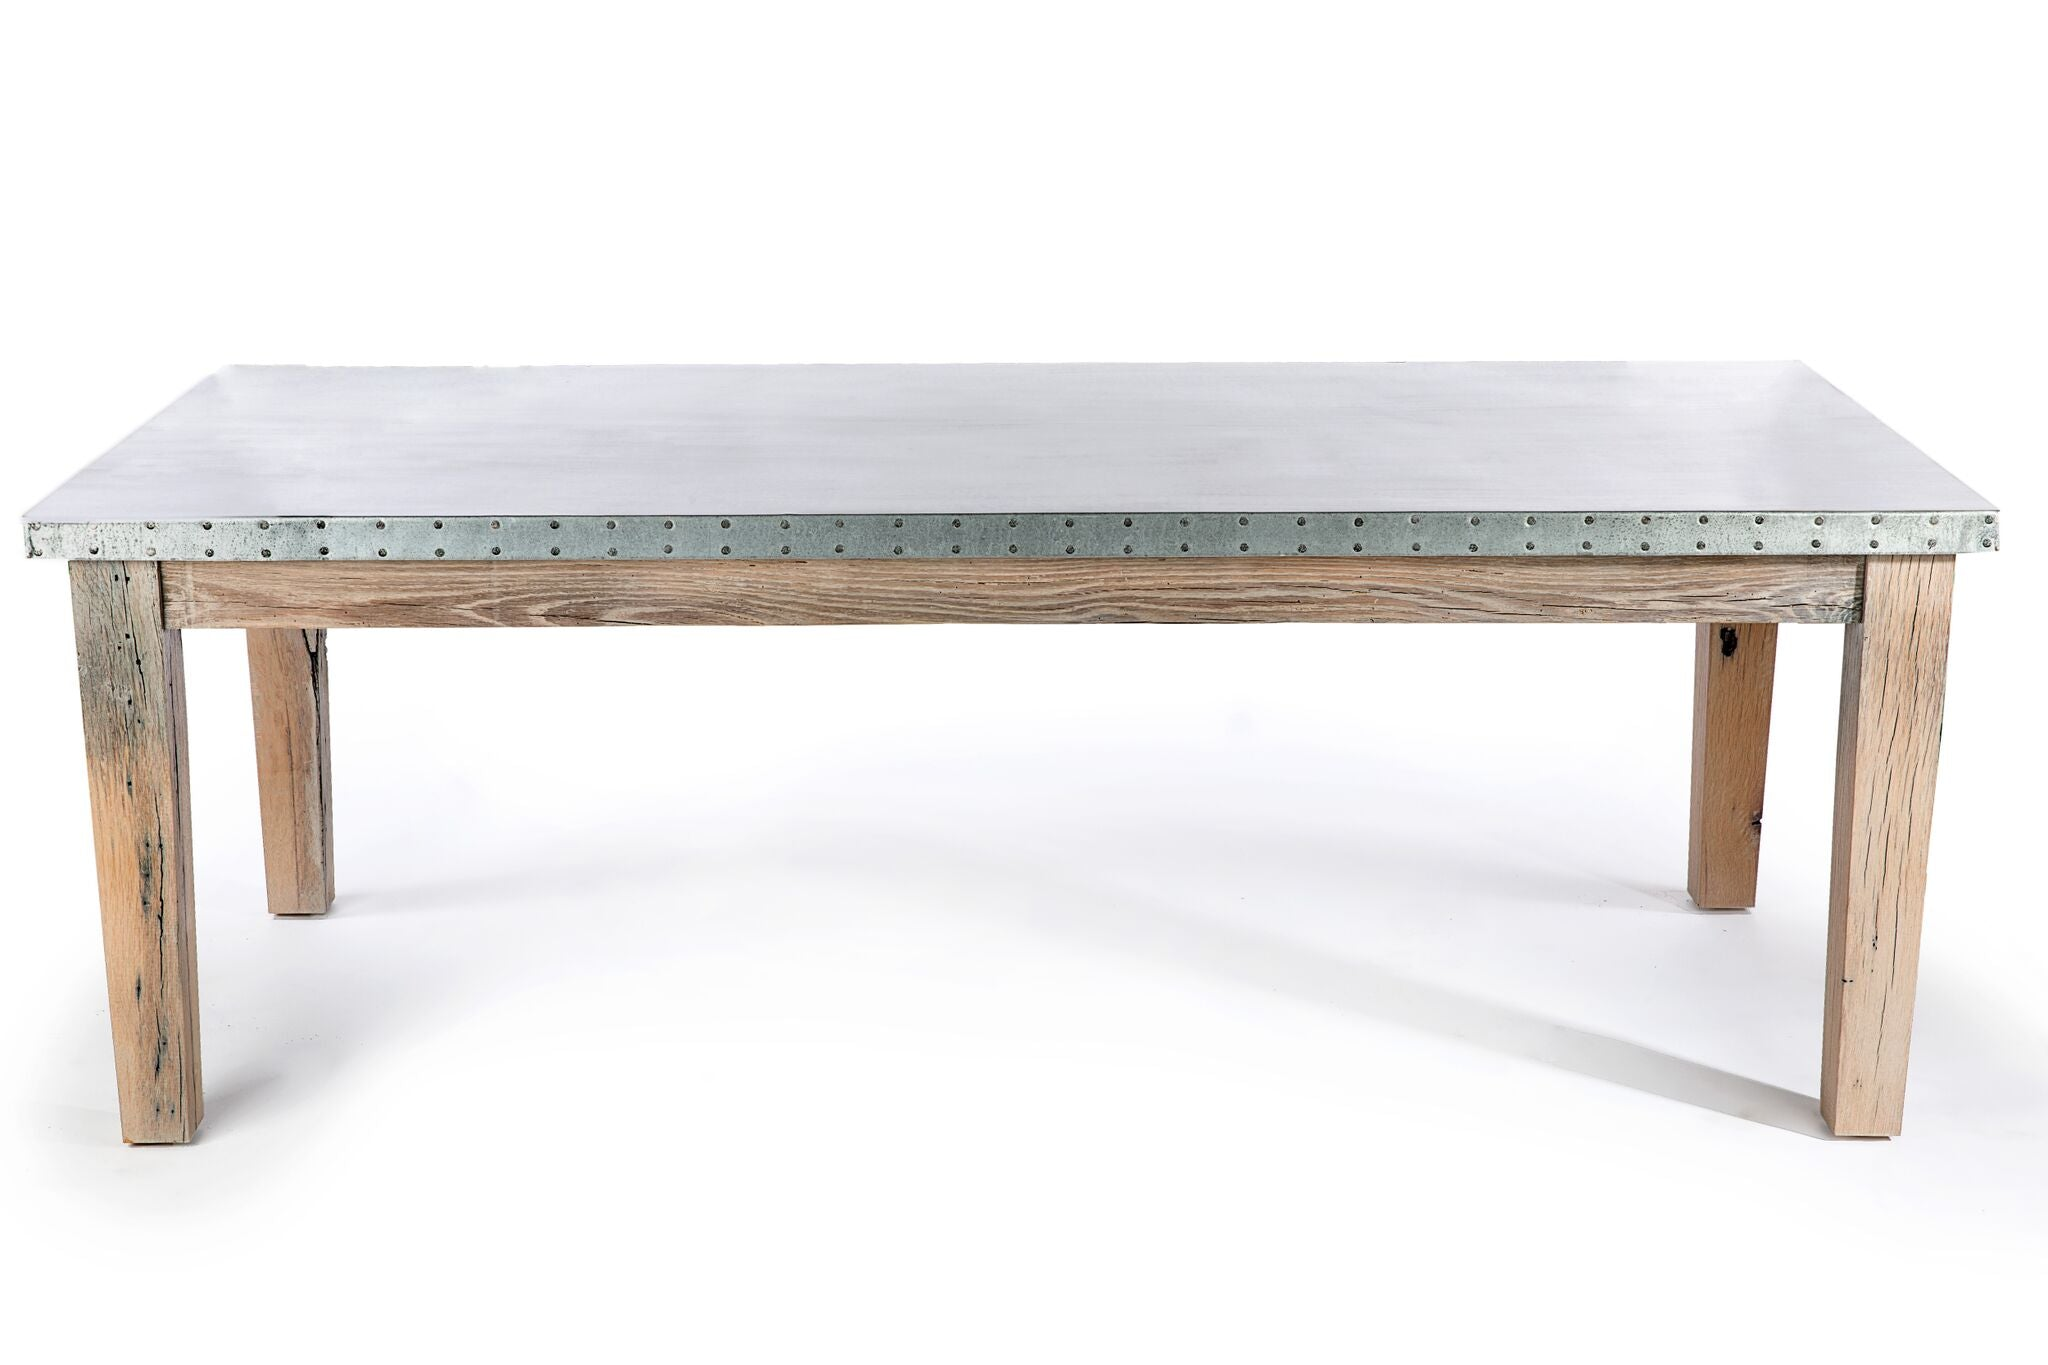 Zinc Rectangular Table | Cambridge Table | CLASSIC | Americana on Reclaimed Oak | CUSTOM SIZE L 68 W 36 H 30 | 2.5"